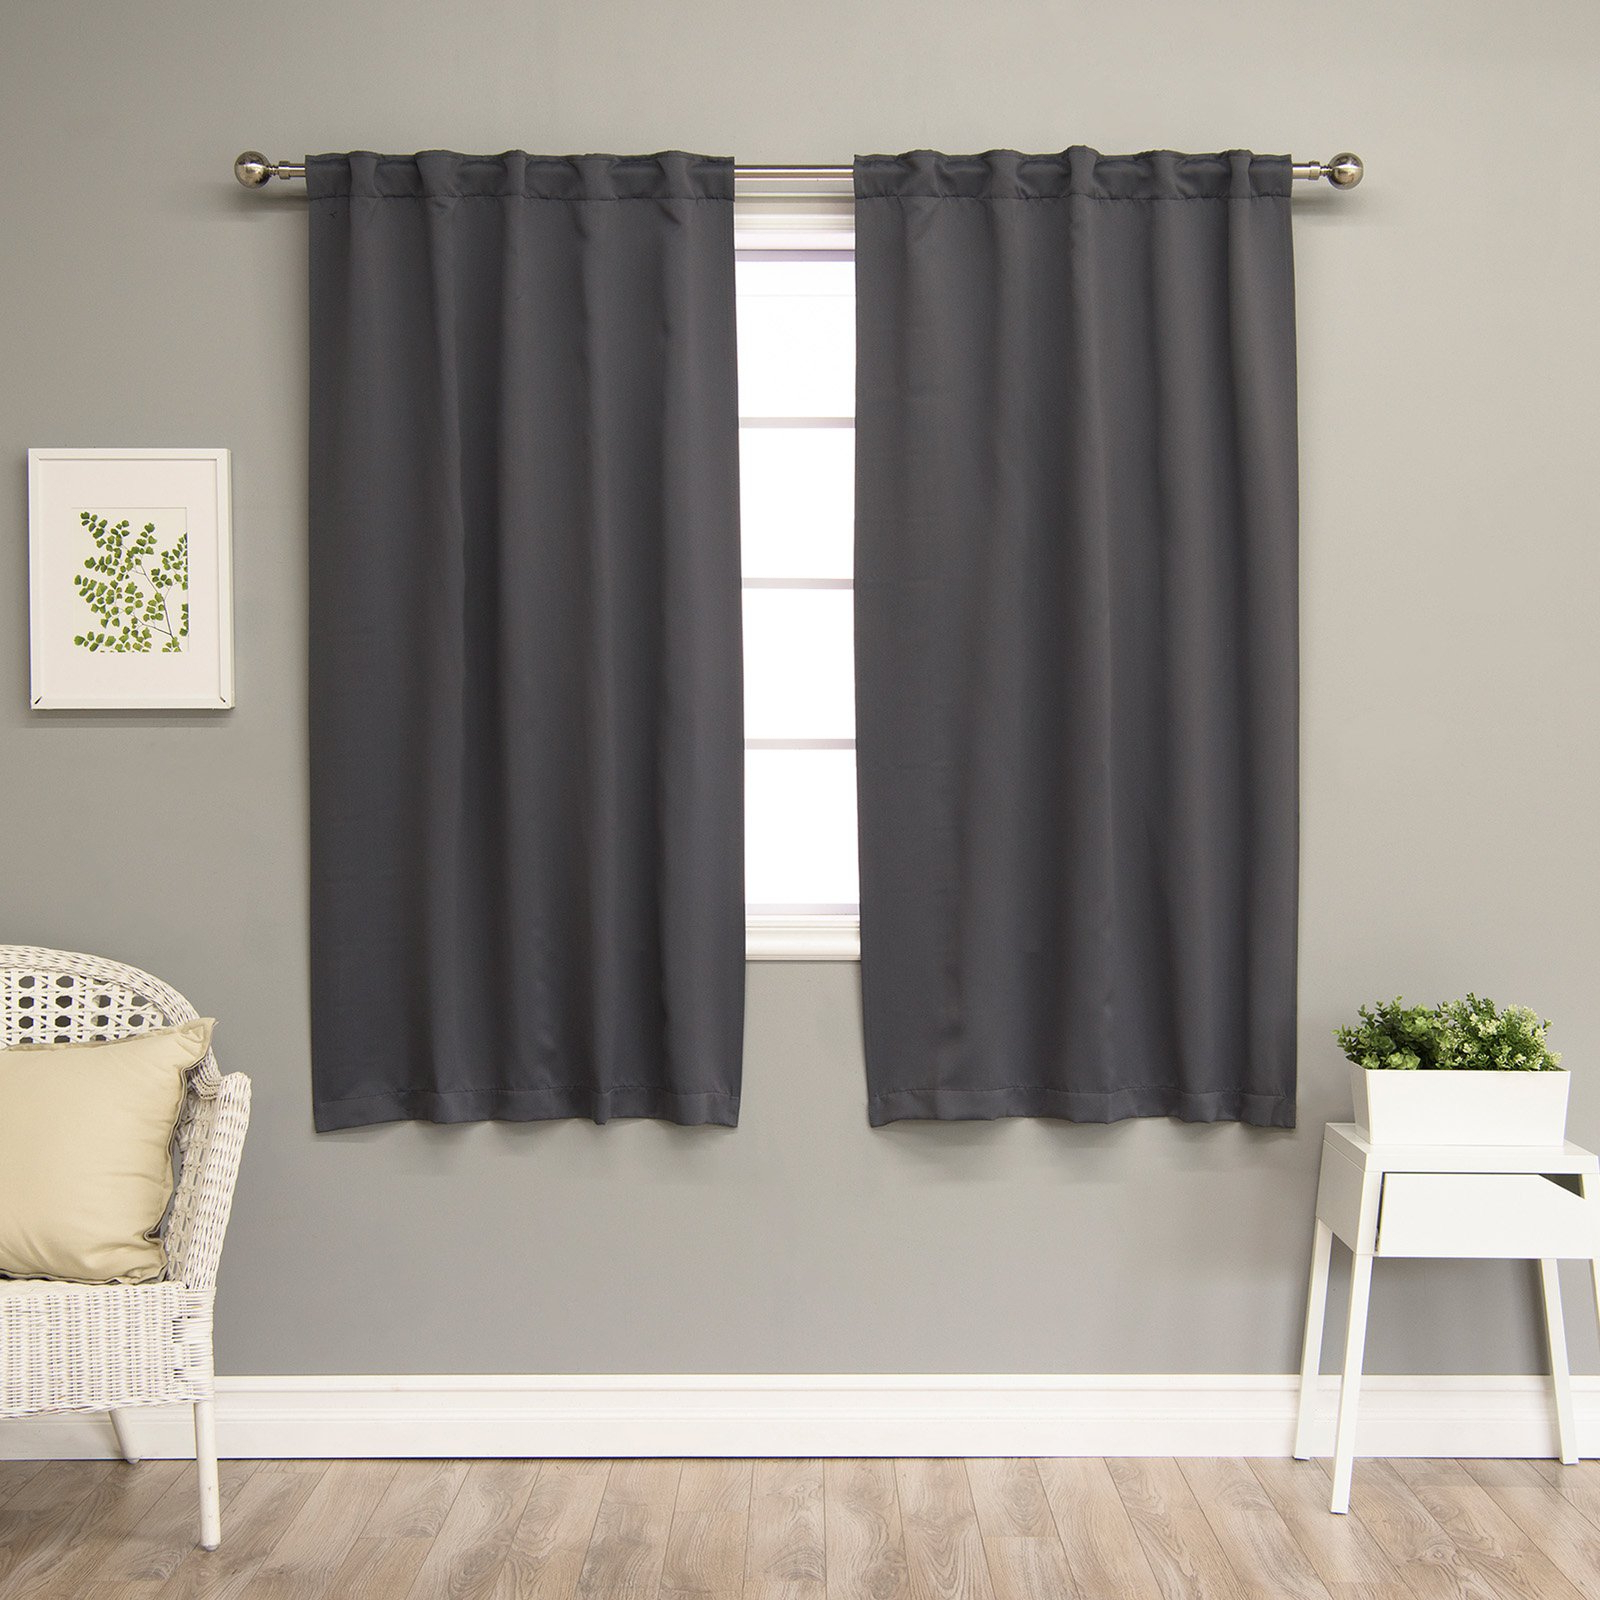 Latest Best Home Fashion Solid Thermal Insulated Blackout Curtain With Solid Thermal Insulated Blackout Curtain Panel Pairs (View 7 of 20)